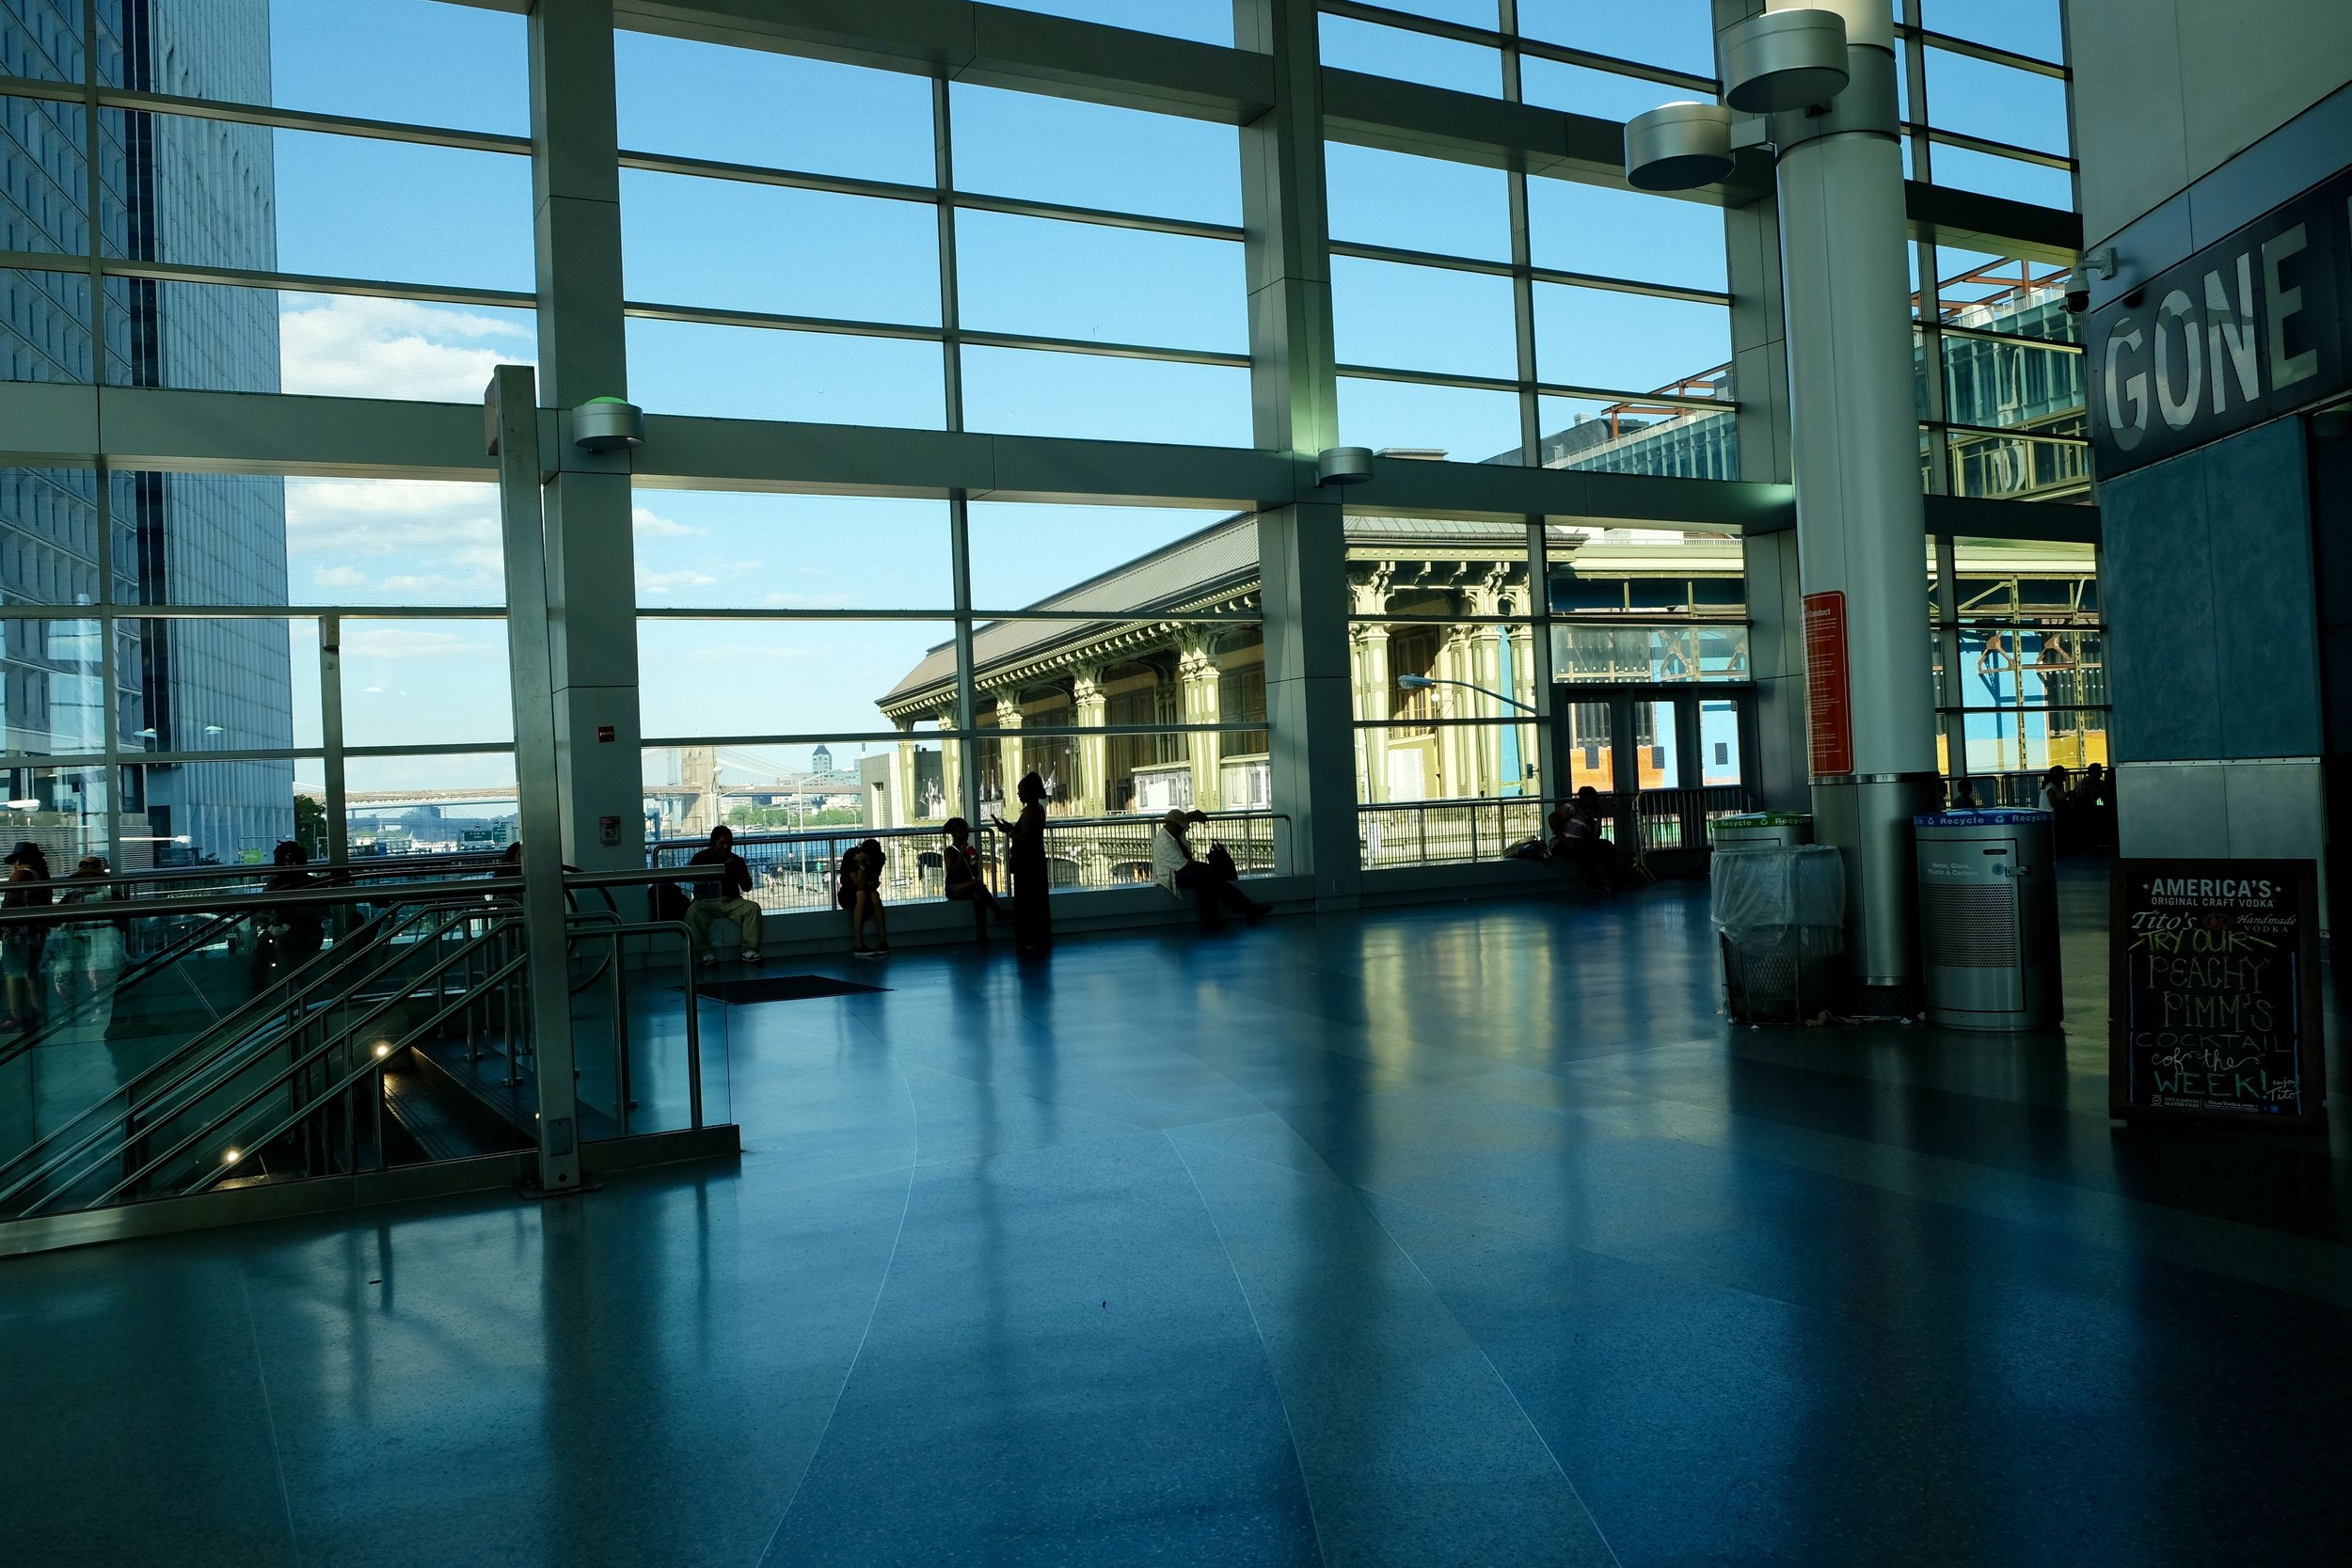 Inside the Staten Island Ferry Terminal, Looking out at the Old South Ferry Station